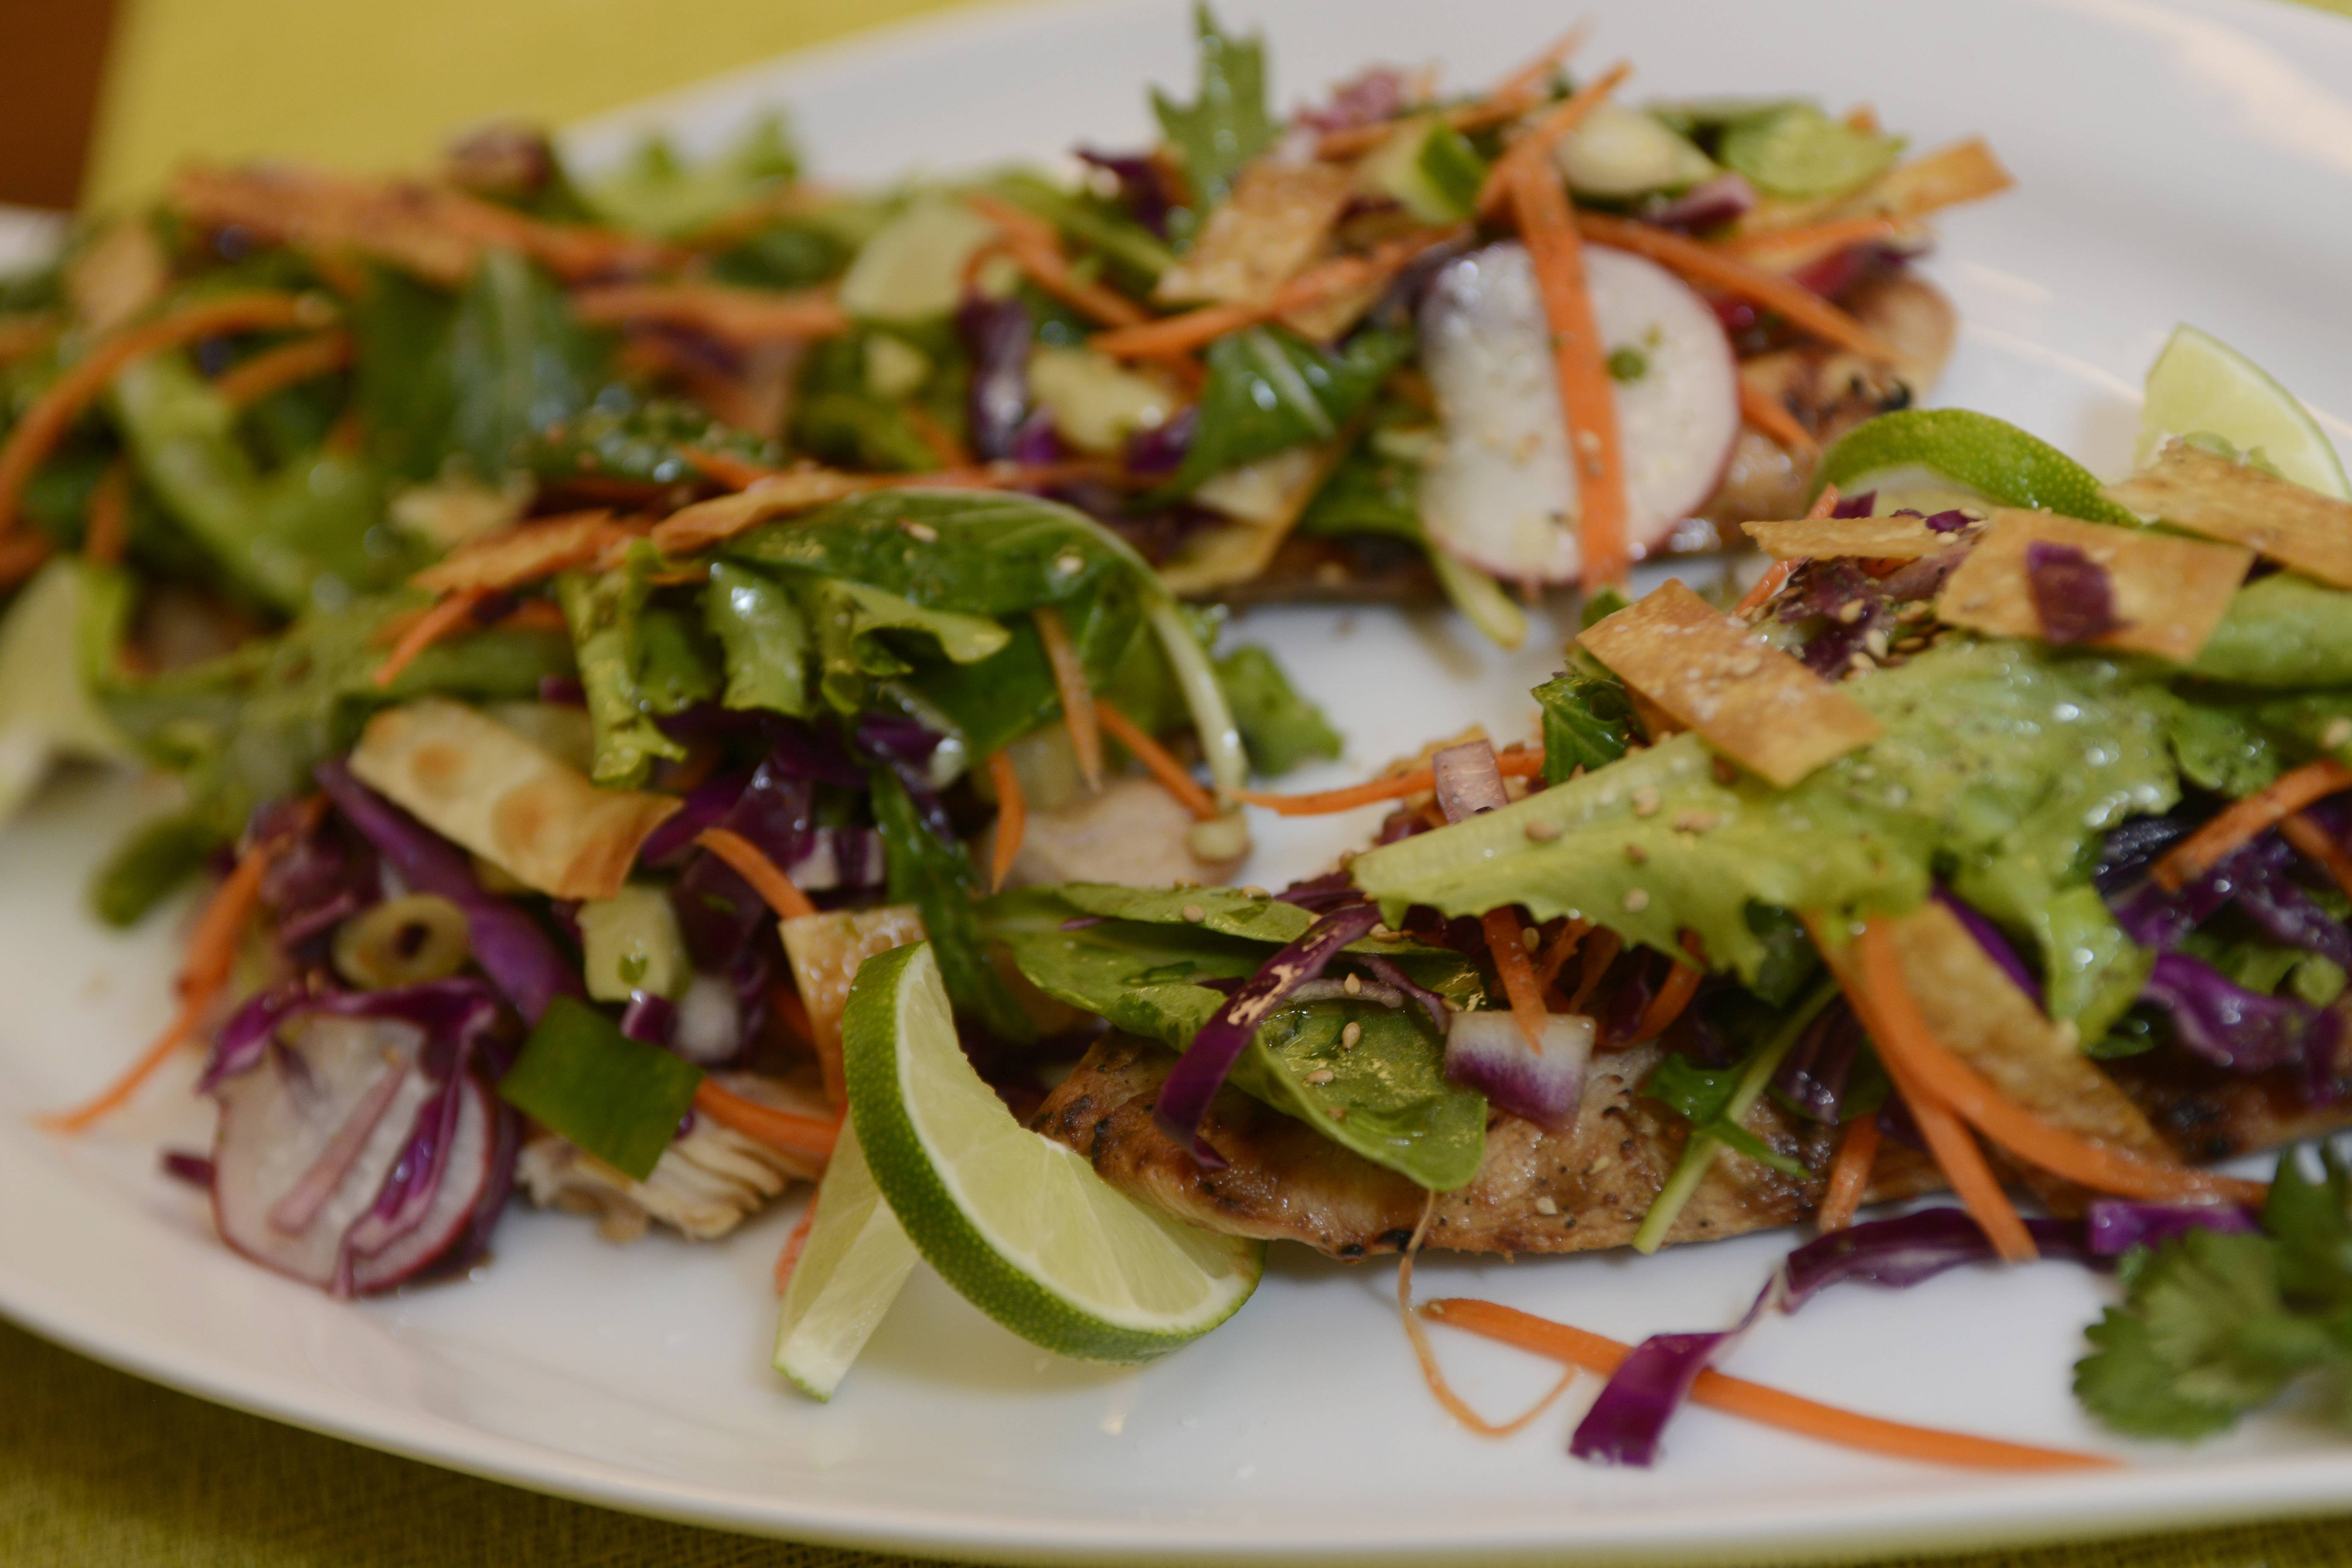 Sue Cortesi grills miso-marinated chicken and tops it with an Asian-influenced salad.